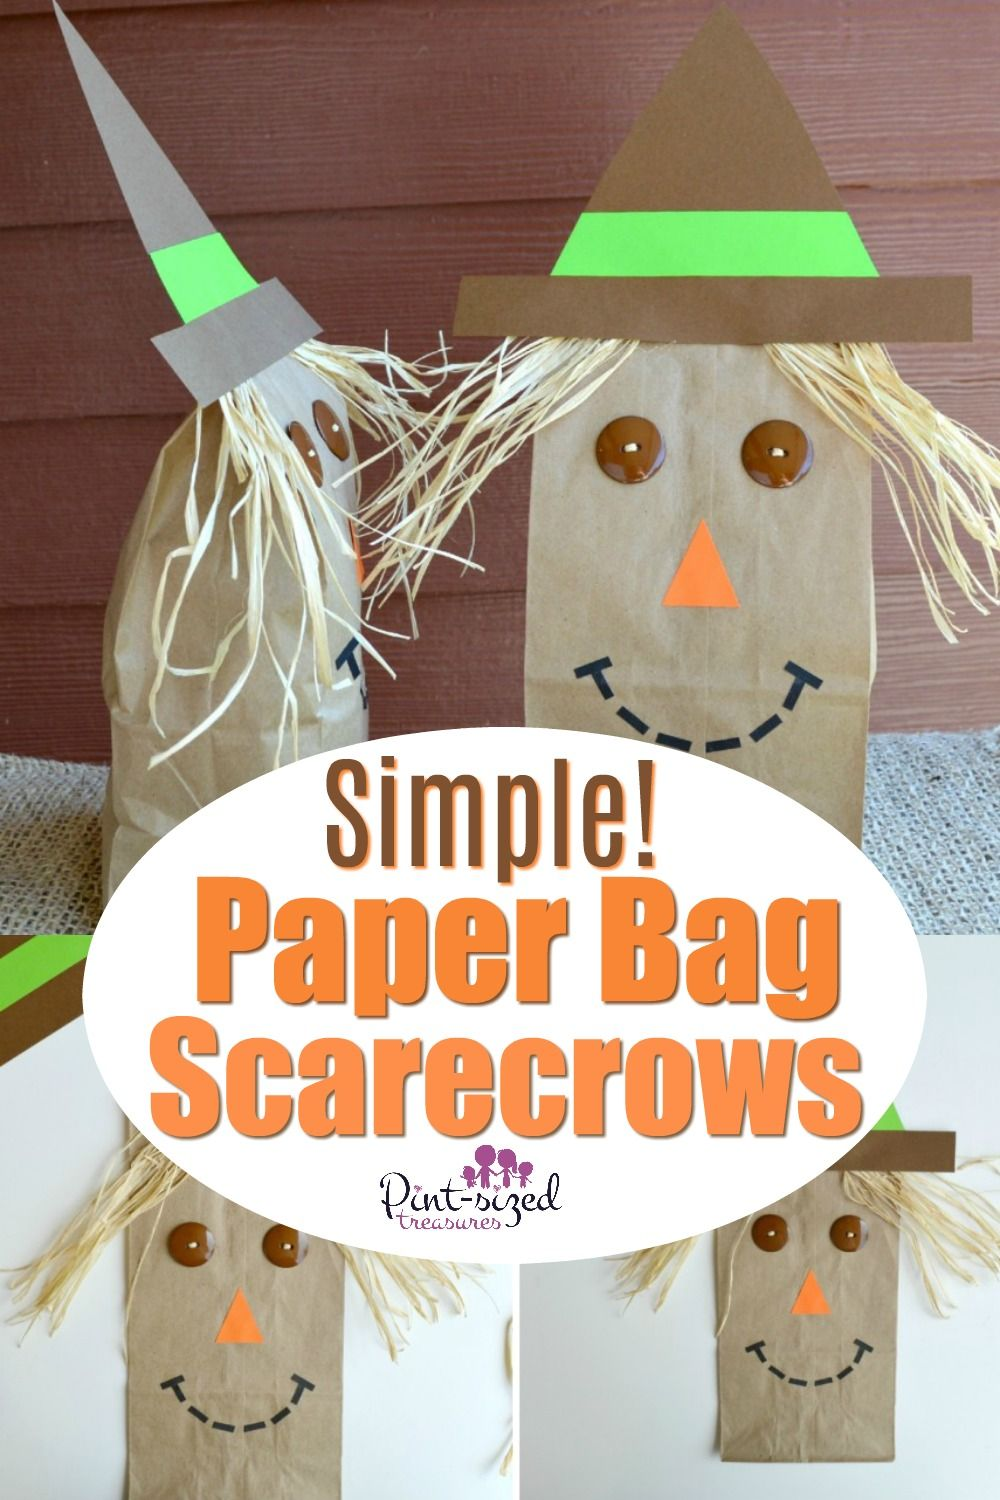 Simple paper bag scarecrow craft kids love! Adding these adorable scarecrows to the paper bags make the fall season come alive for your kids! This craft is simple enough for kids of all ages from preschool all the way to tweens! #paperbag #paperbagcraft #scarecrows #forpreschool #fortweens #simplecraft #easycraft #pintsizedtreasures